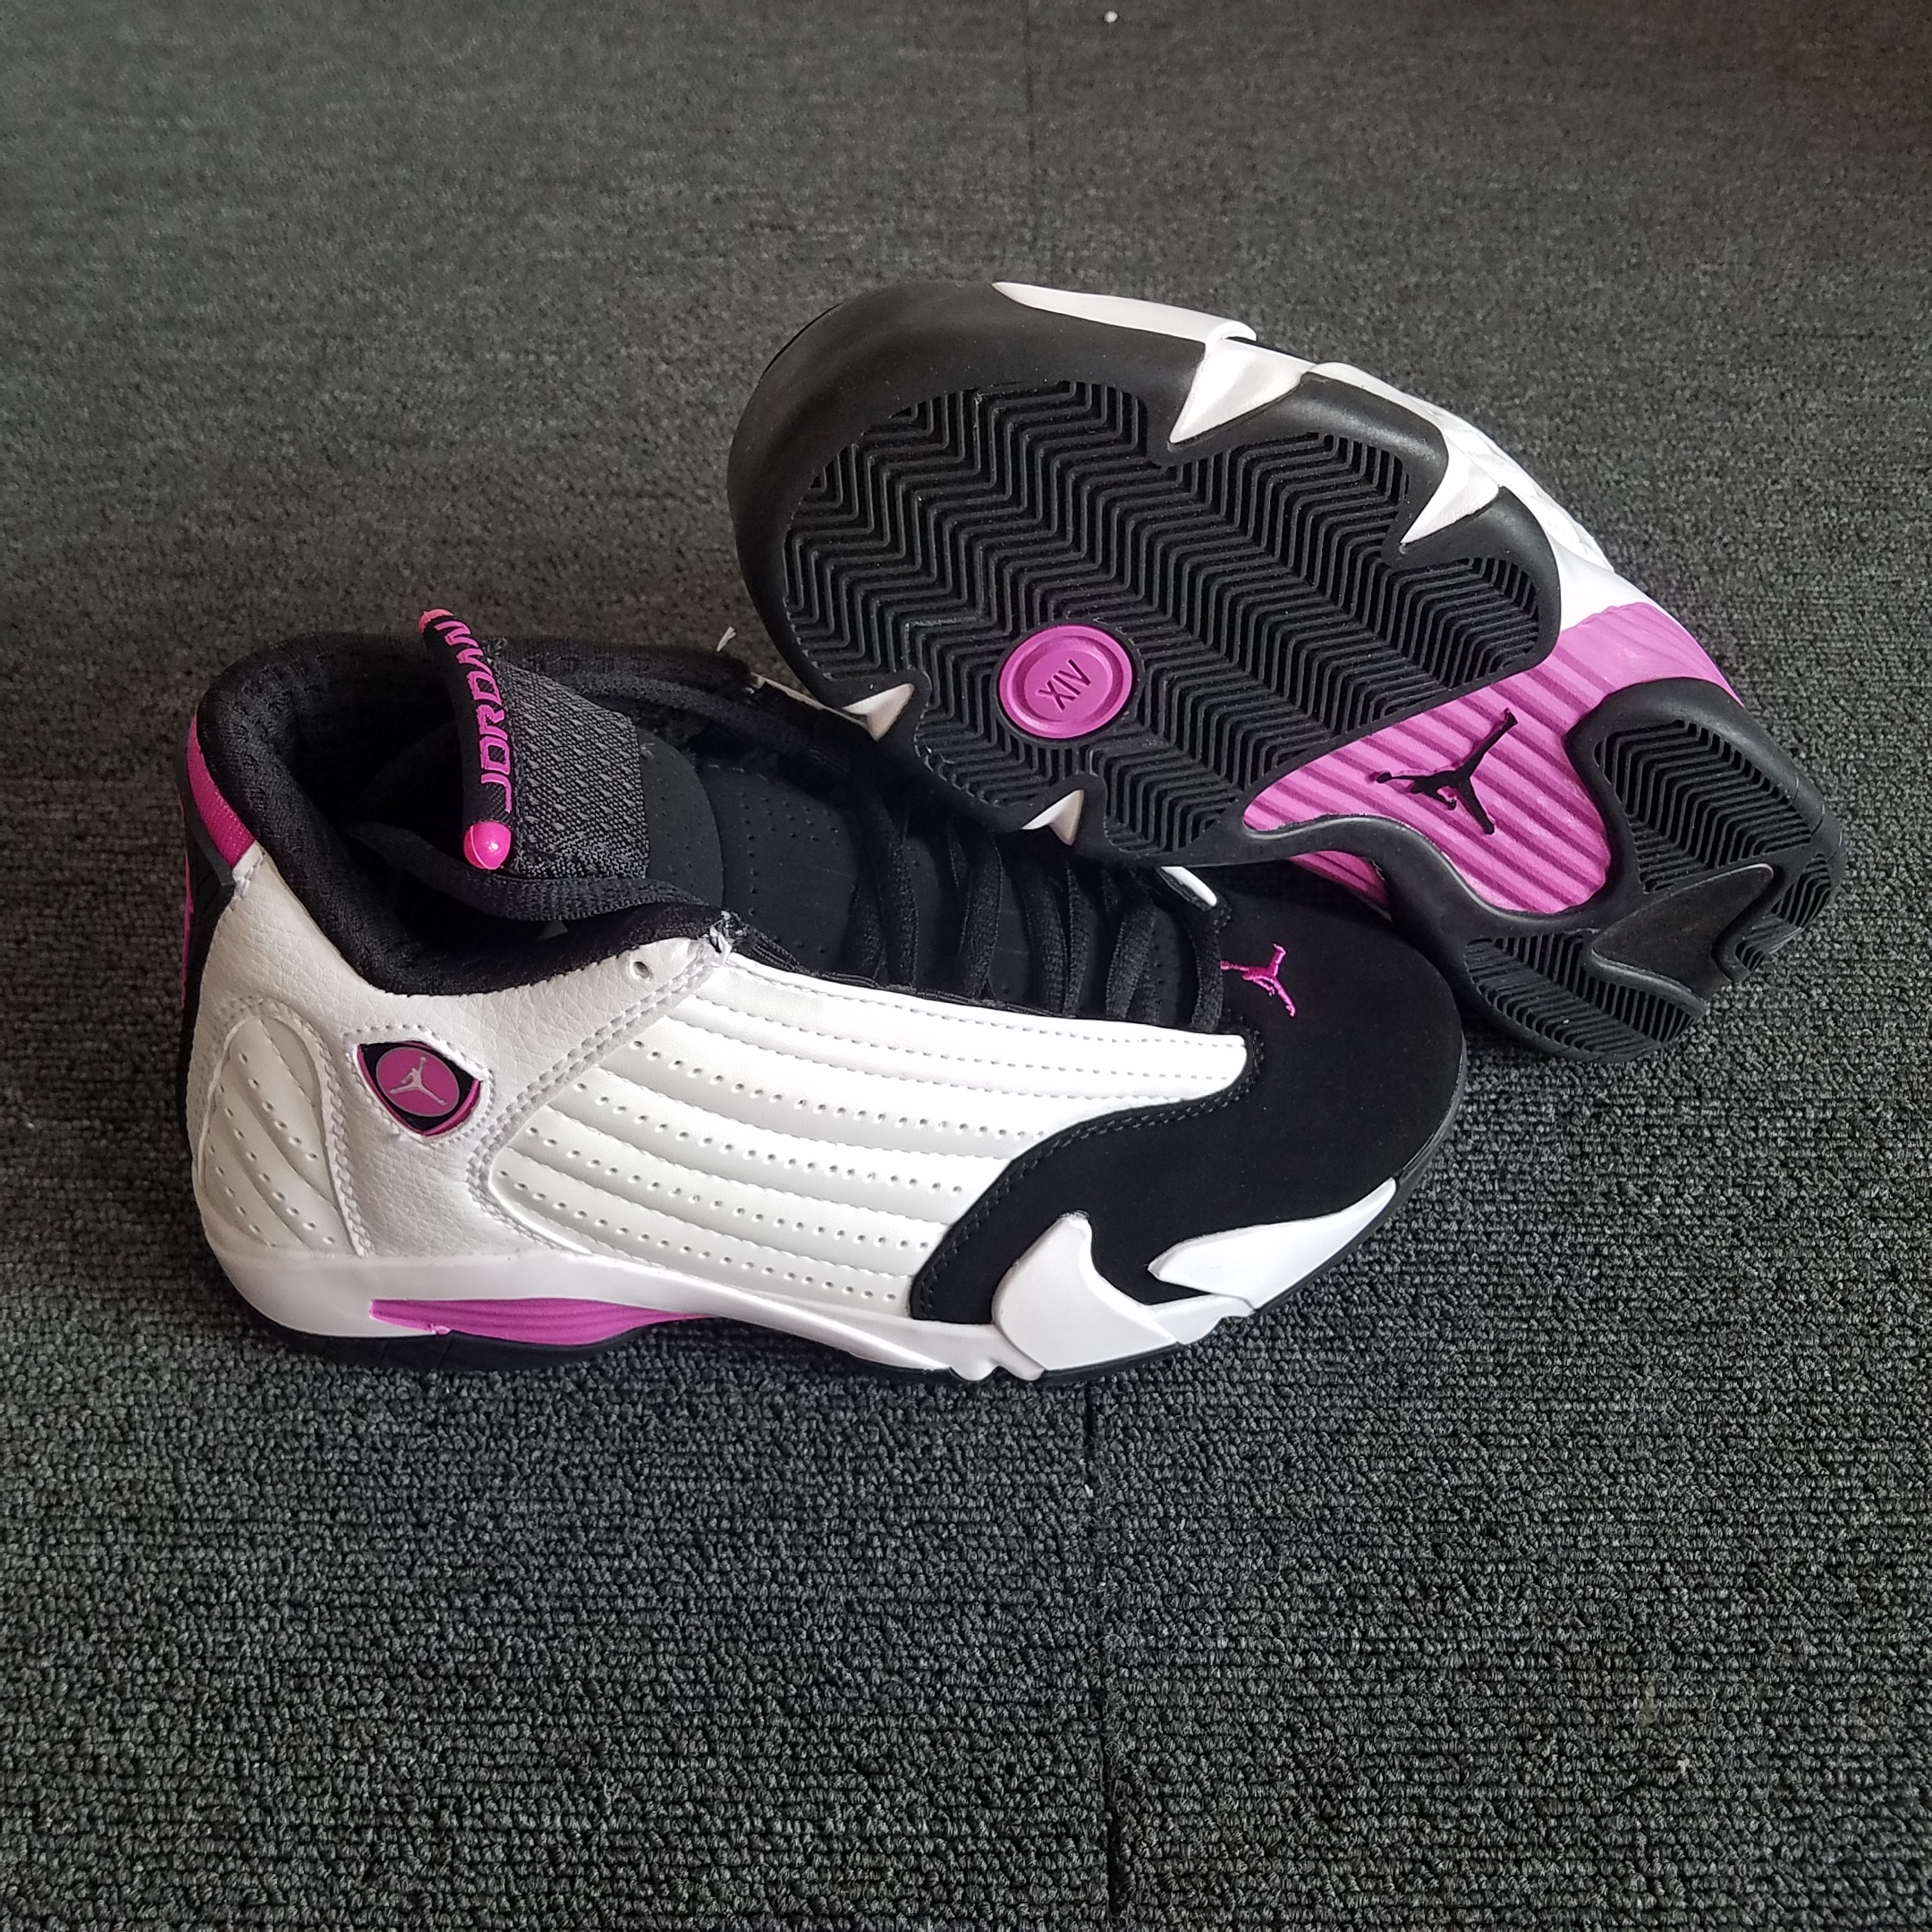 competitive price 2c32e d9407 ... germany women air jordan 14 retro white pink black shoes e3b57 3f518